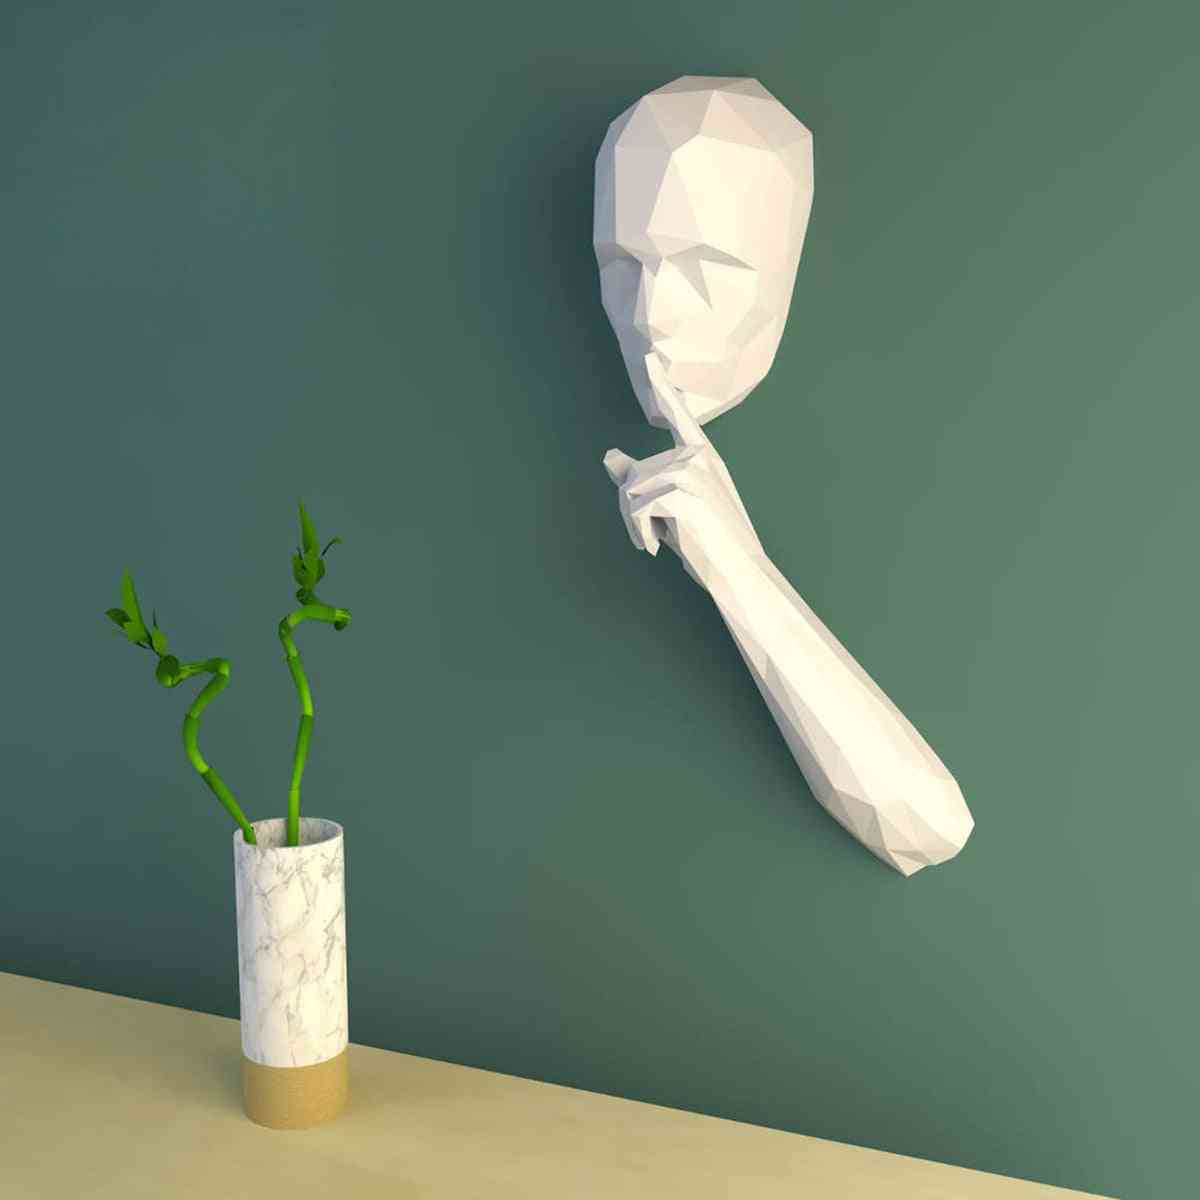 3d Paper Model Of The Silent Person - Home Decor